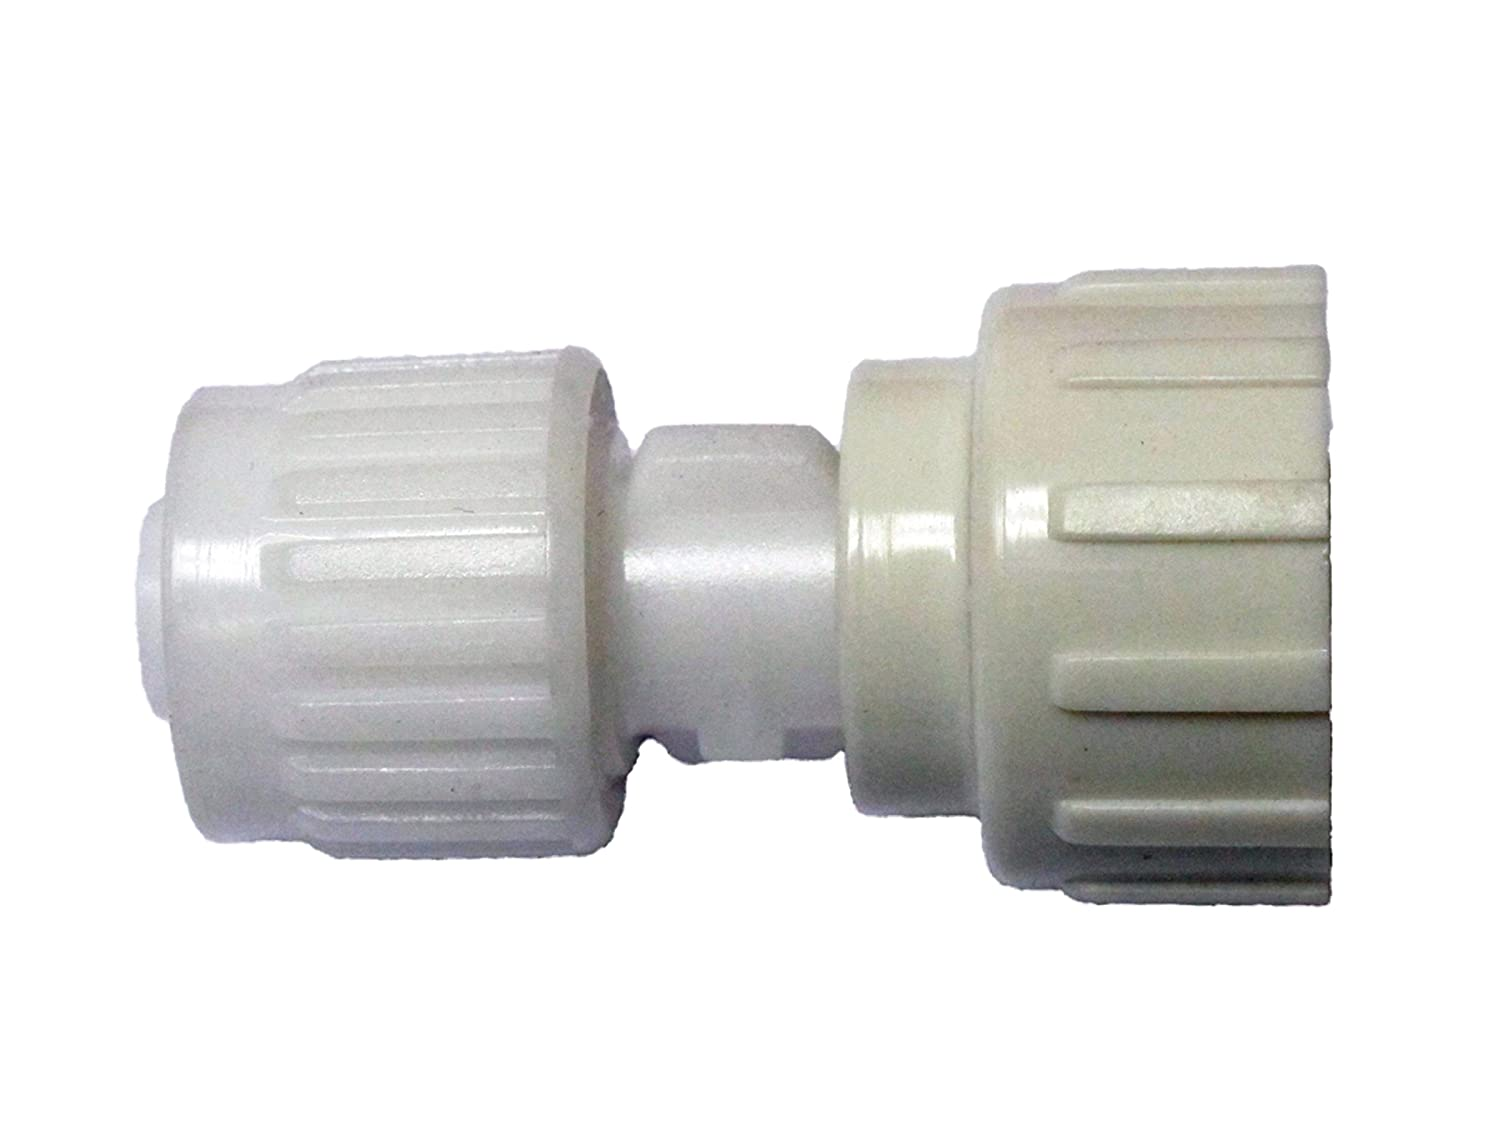 "Flair-It 16866 Plastic Garden Hose Swivel Adapter, 0.5"" Size"